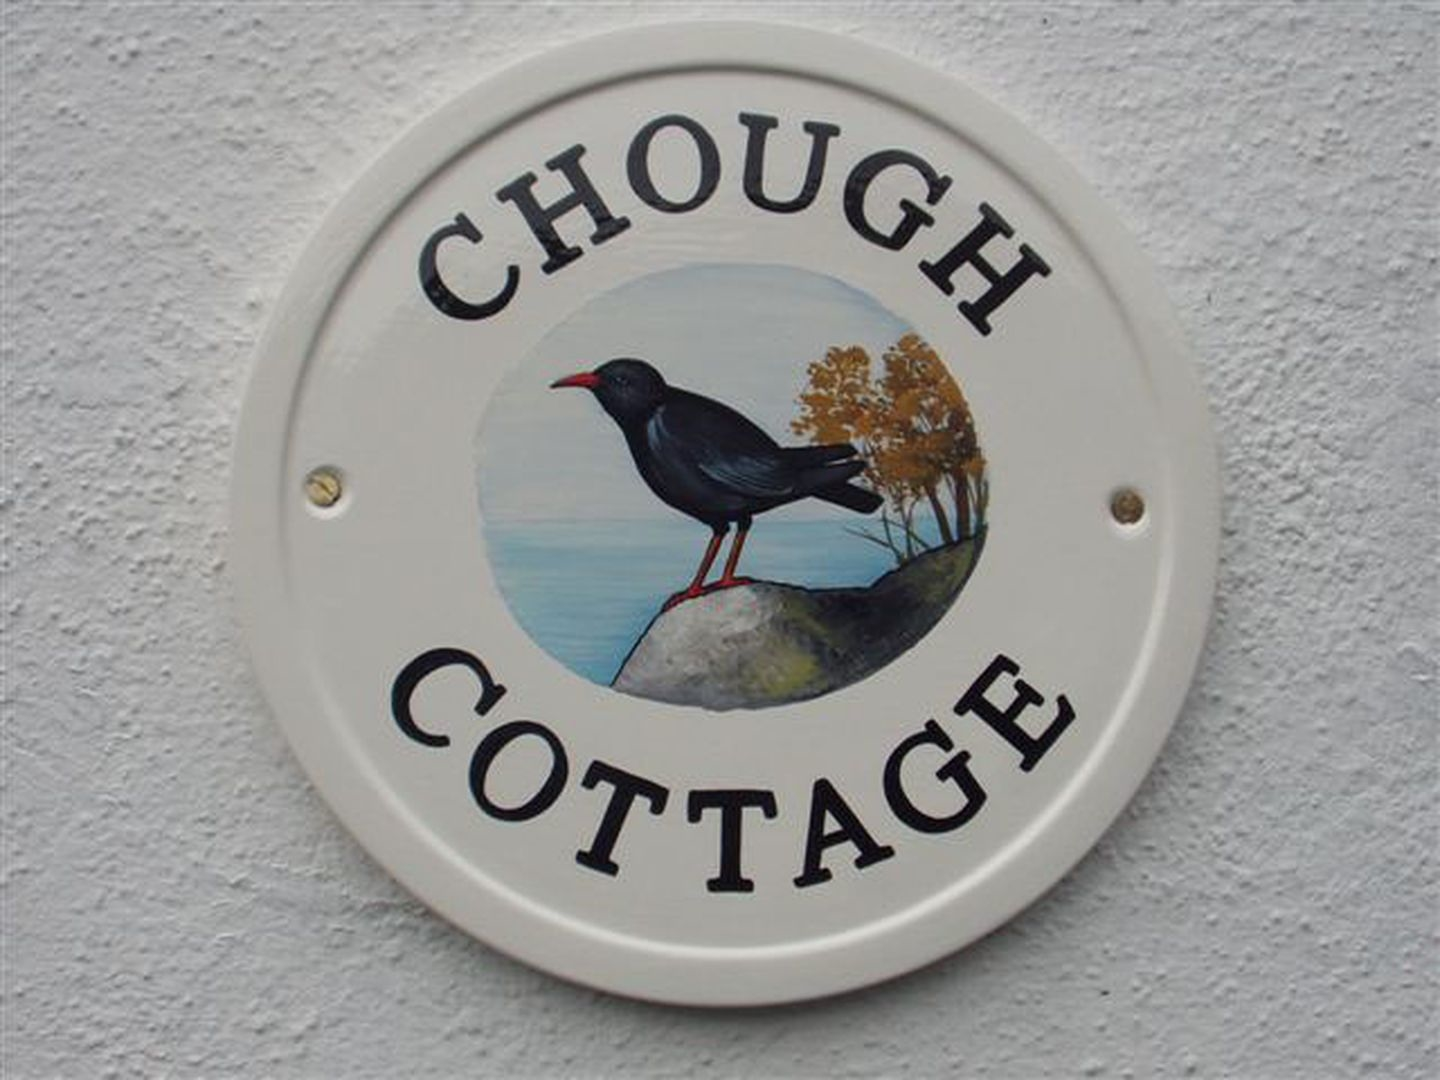 Chough Cottage